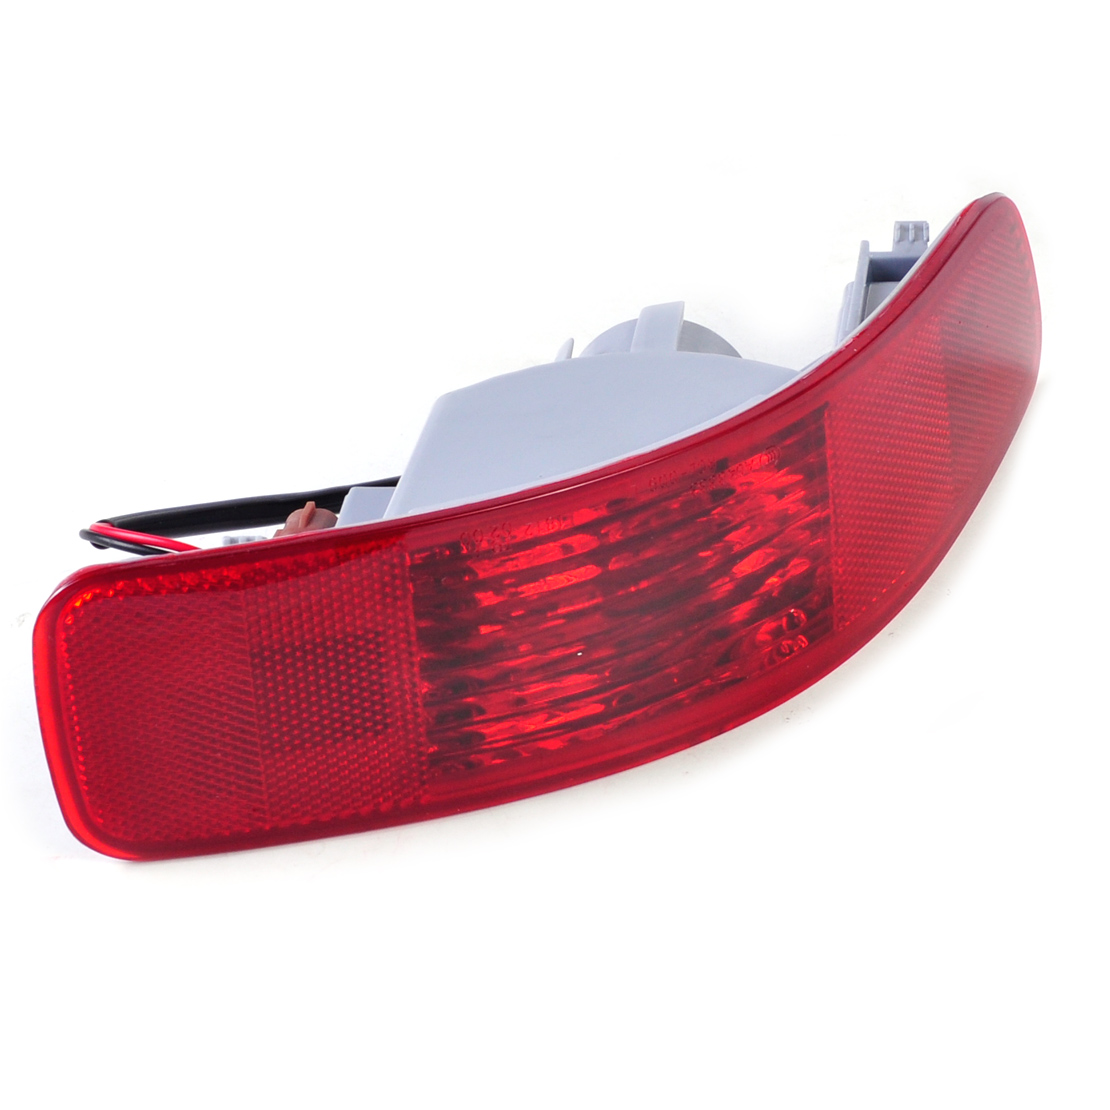 beler Rear Left Side Fog Light Bumper Lamp Reflector SL693-LH Fit for Mitsubishi Outlander 2007 2008 2009 2010 2011 2012 2013 car fog light assembly for mitsubishi pajero 2007 2008 2009 left